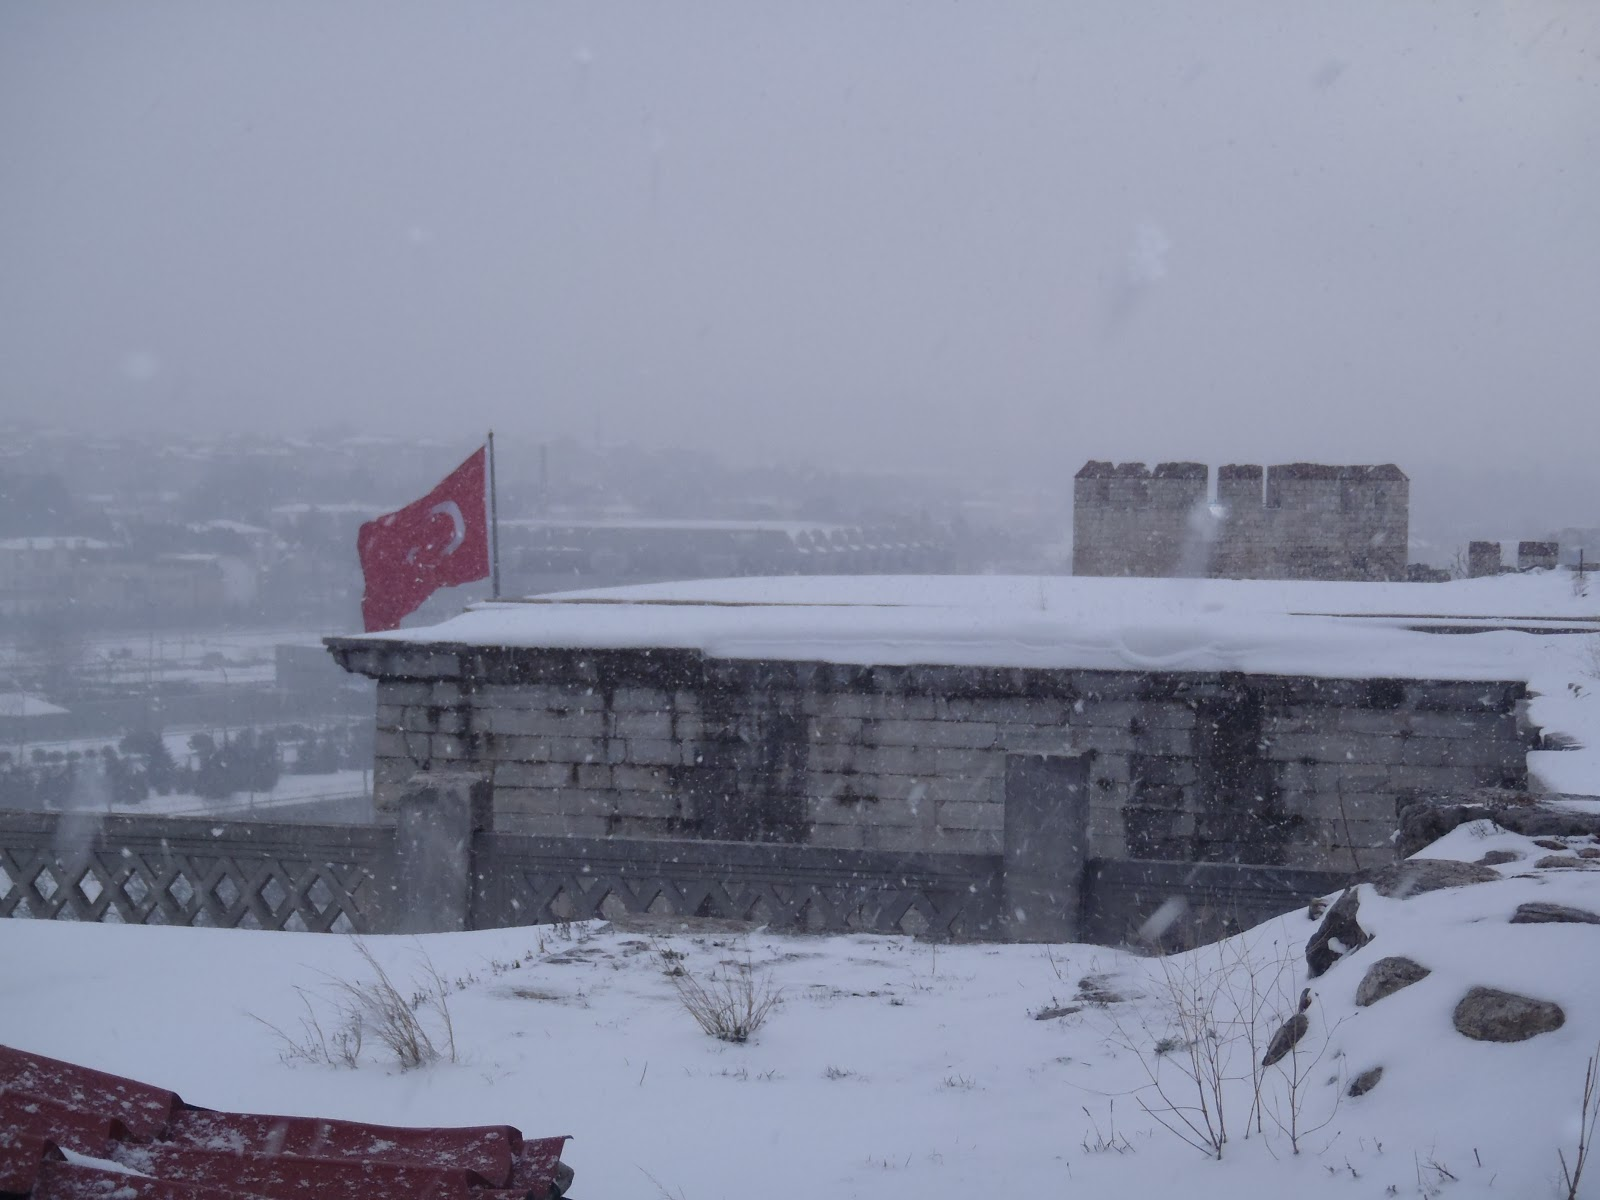 On top of the Golden Gate during a snowstorm, overlooking what was once the Thracian Plains